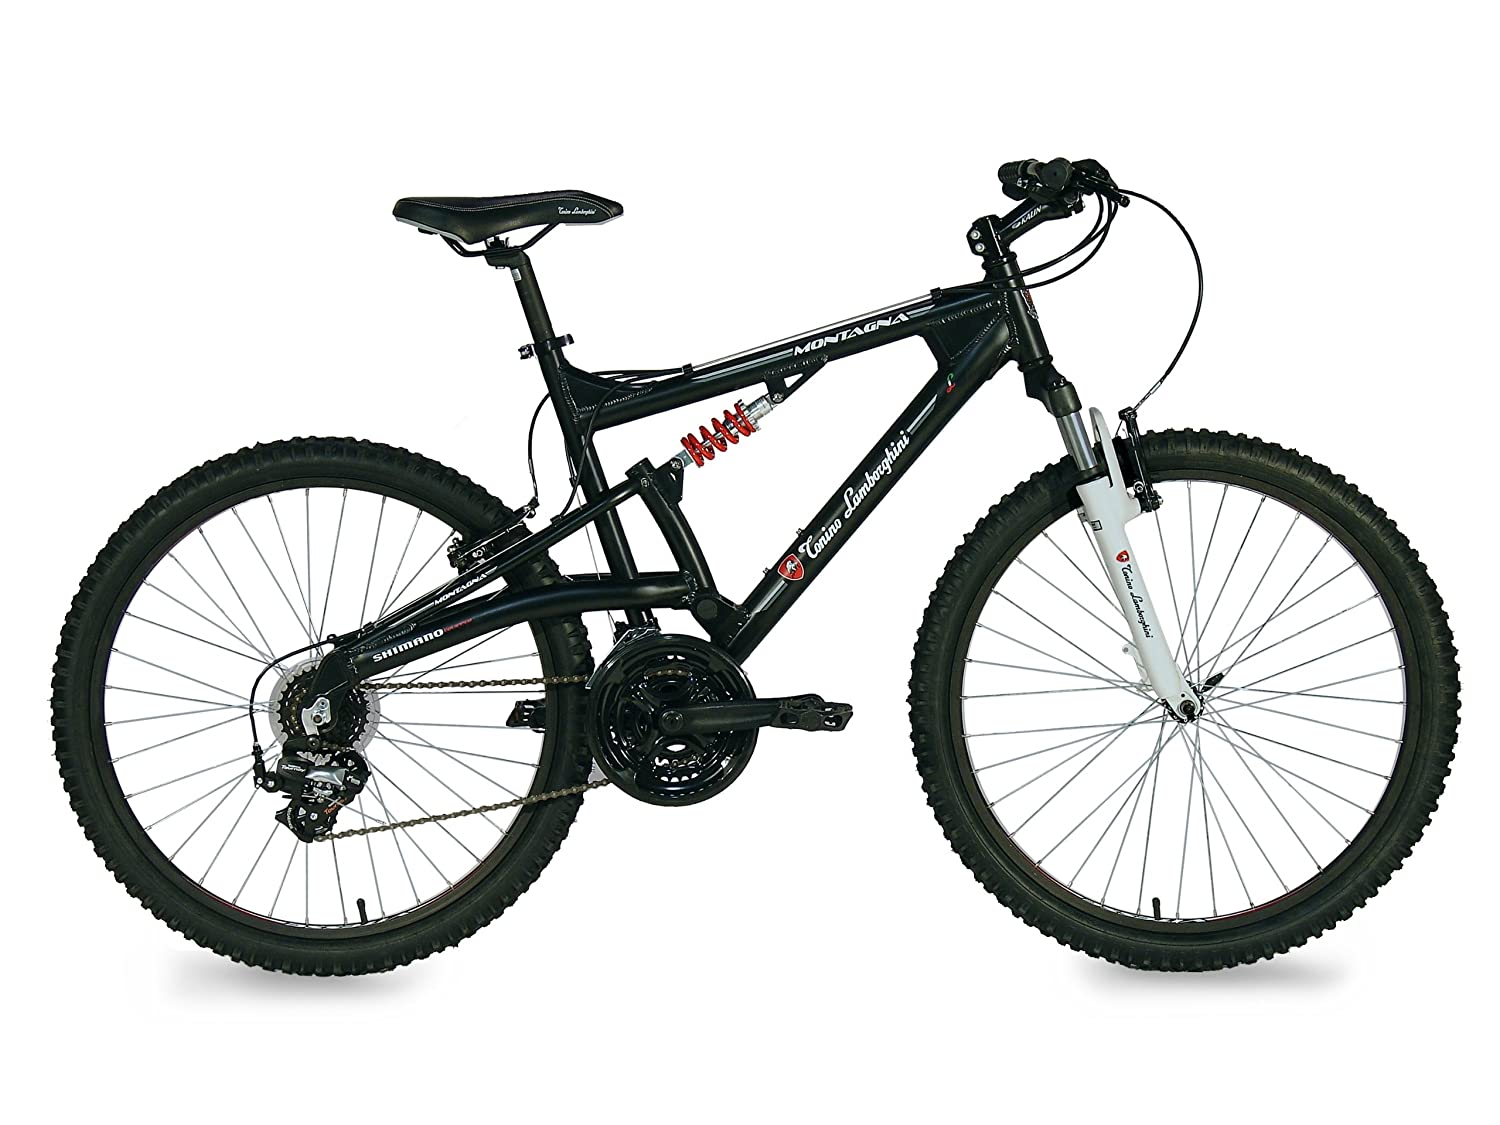 Lamborghini Montagna Dual Suspension 24 Speed Mountain Bike, Black,  19 Inch: Amazon.co.uk: Sports U0026 Outdoors